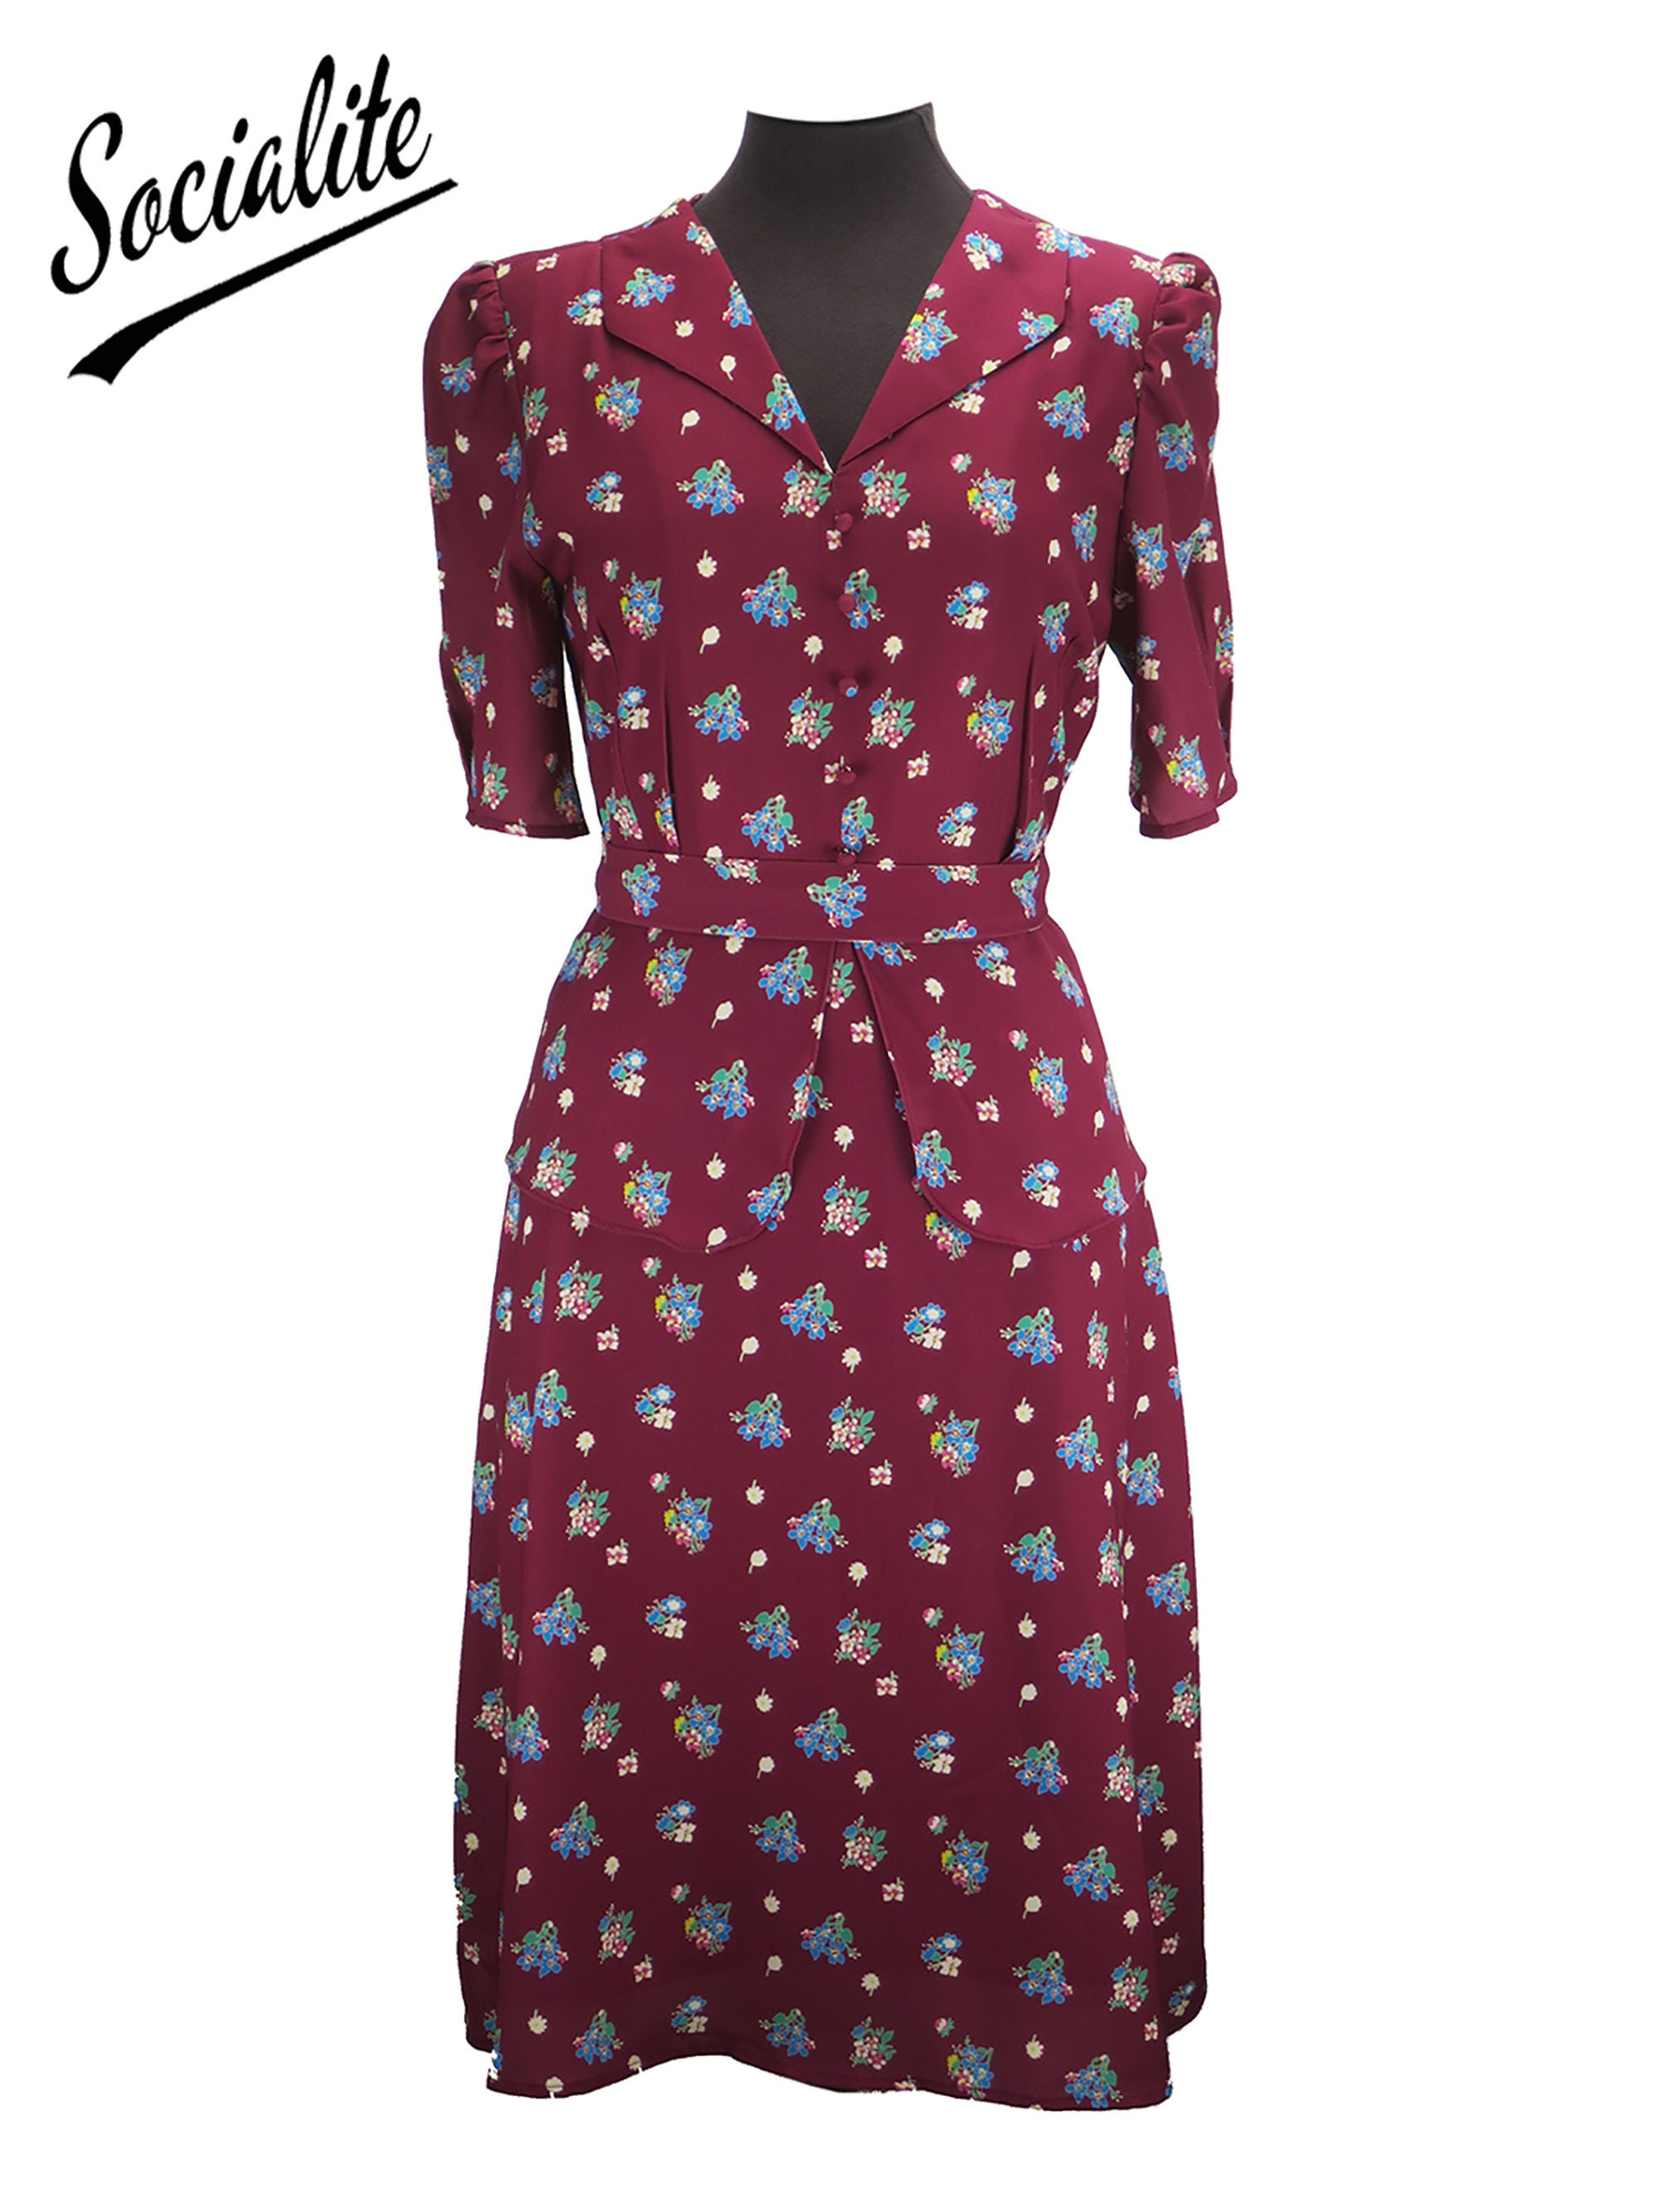 500 Vintage Style Dresses for Sale | Vintage Inspired Dresses Revival Socialite Replica 1940s Vintage Floral Symphony Peplum Dress $113.99 AT vintagedancer.com